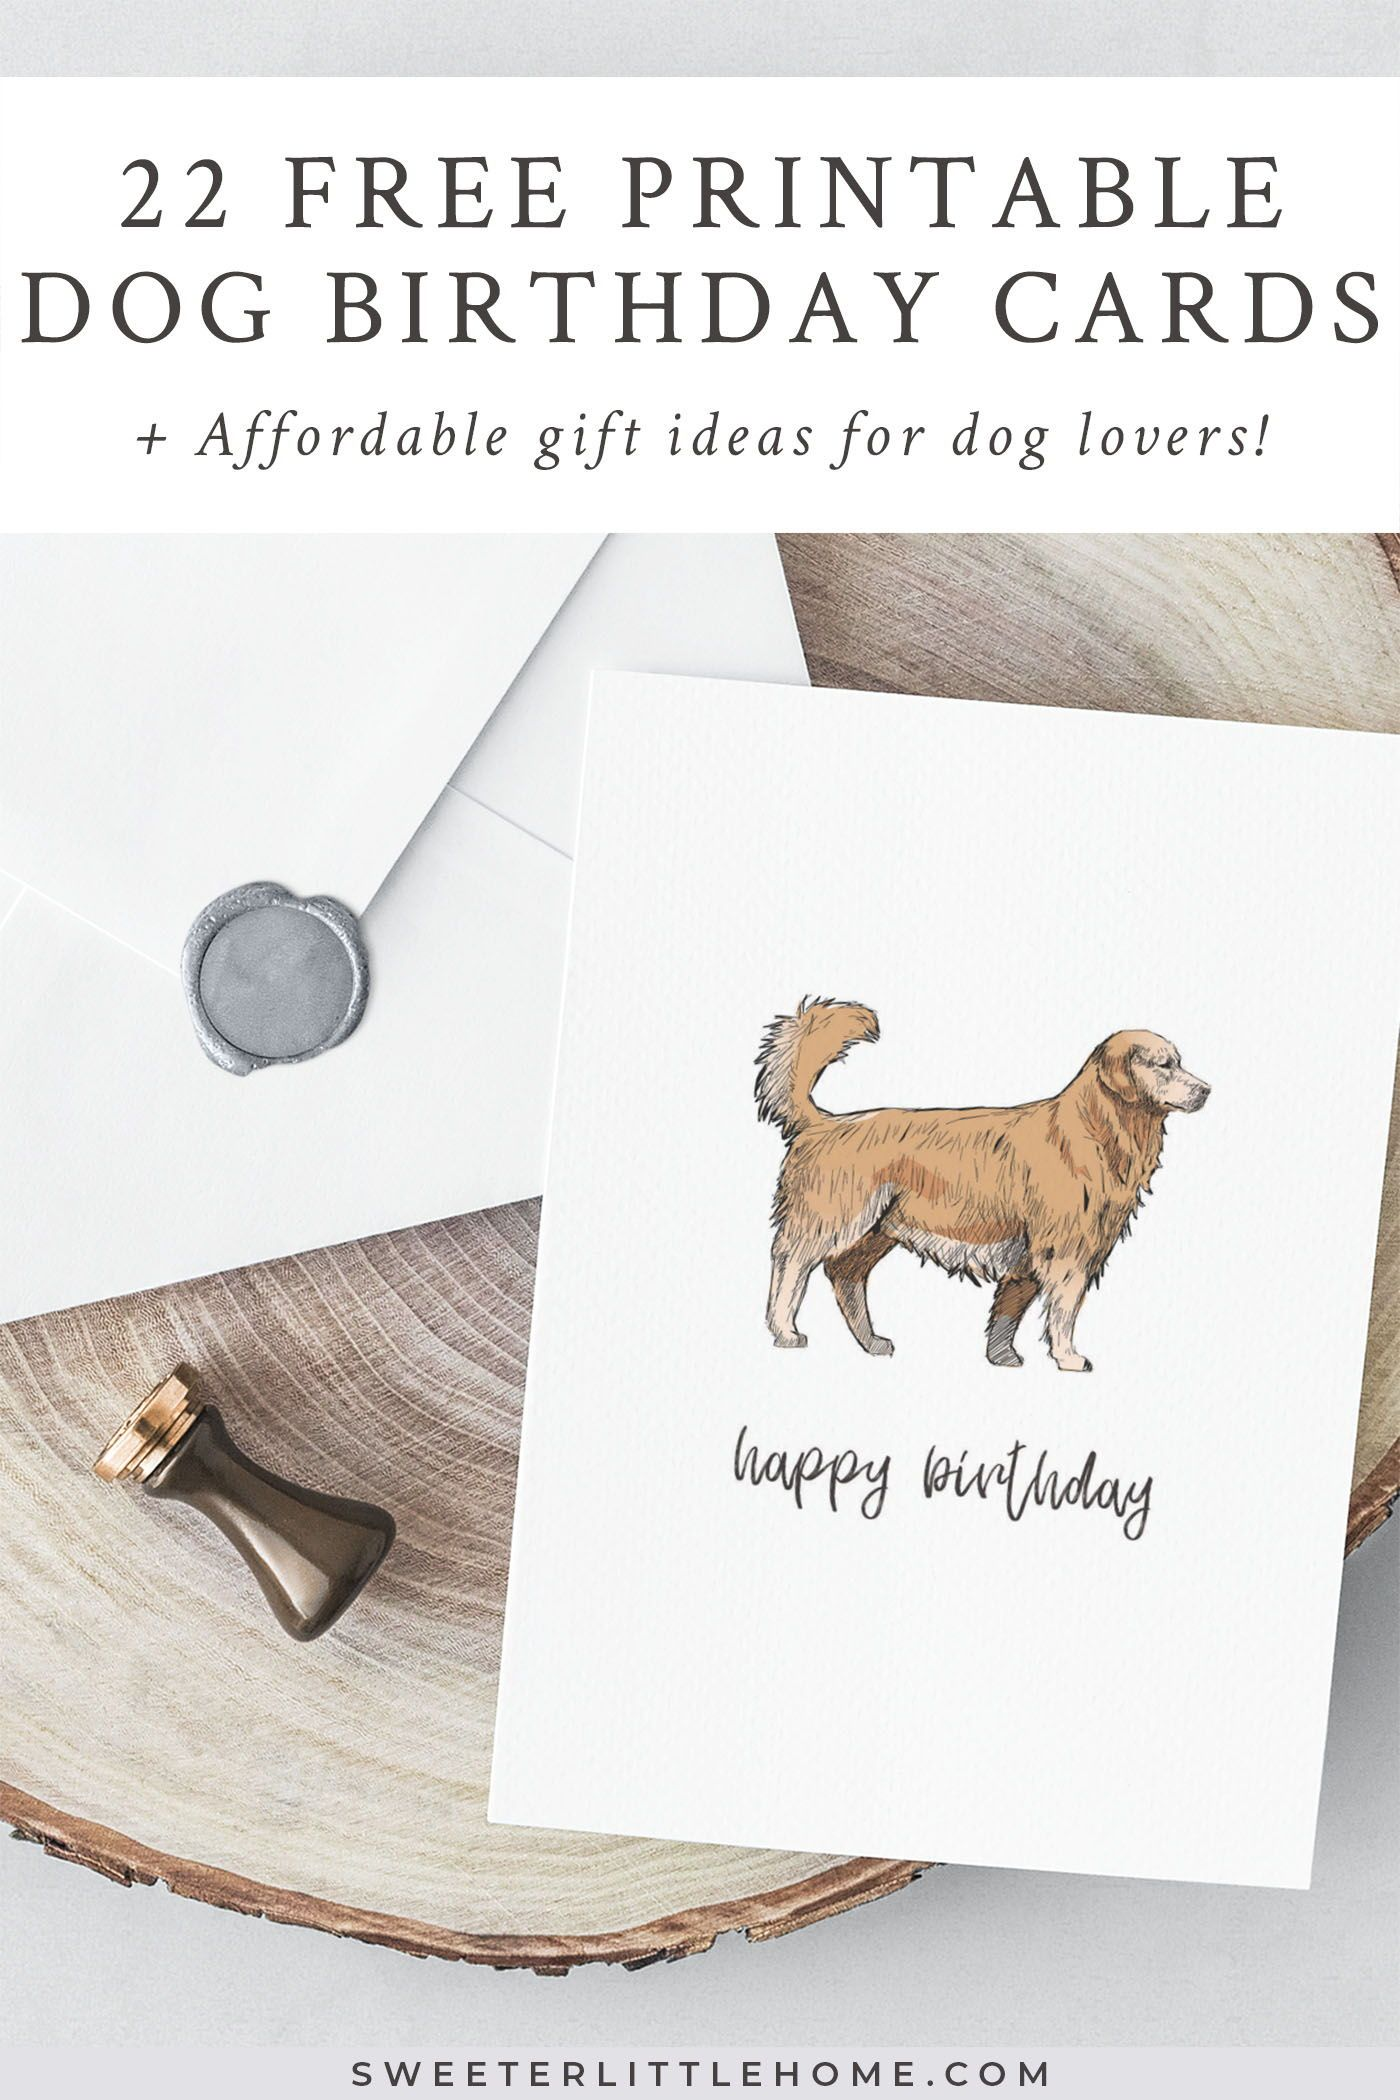 photograph about Dog Birthday Cards Printable Free titled 22 totally free printable canine birthday playing cards Absolutely free Printables